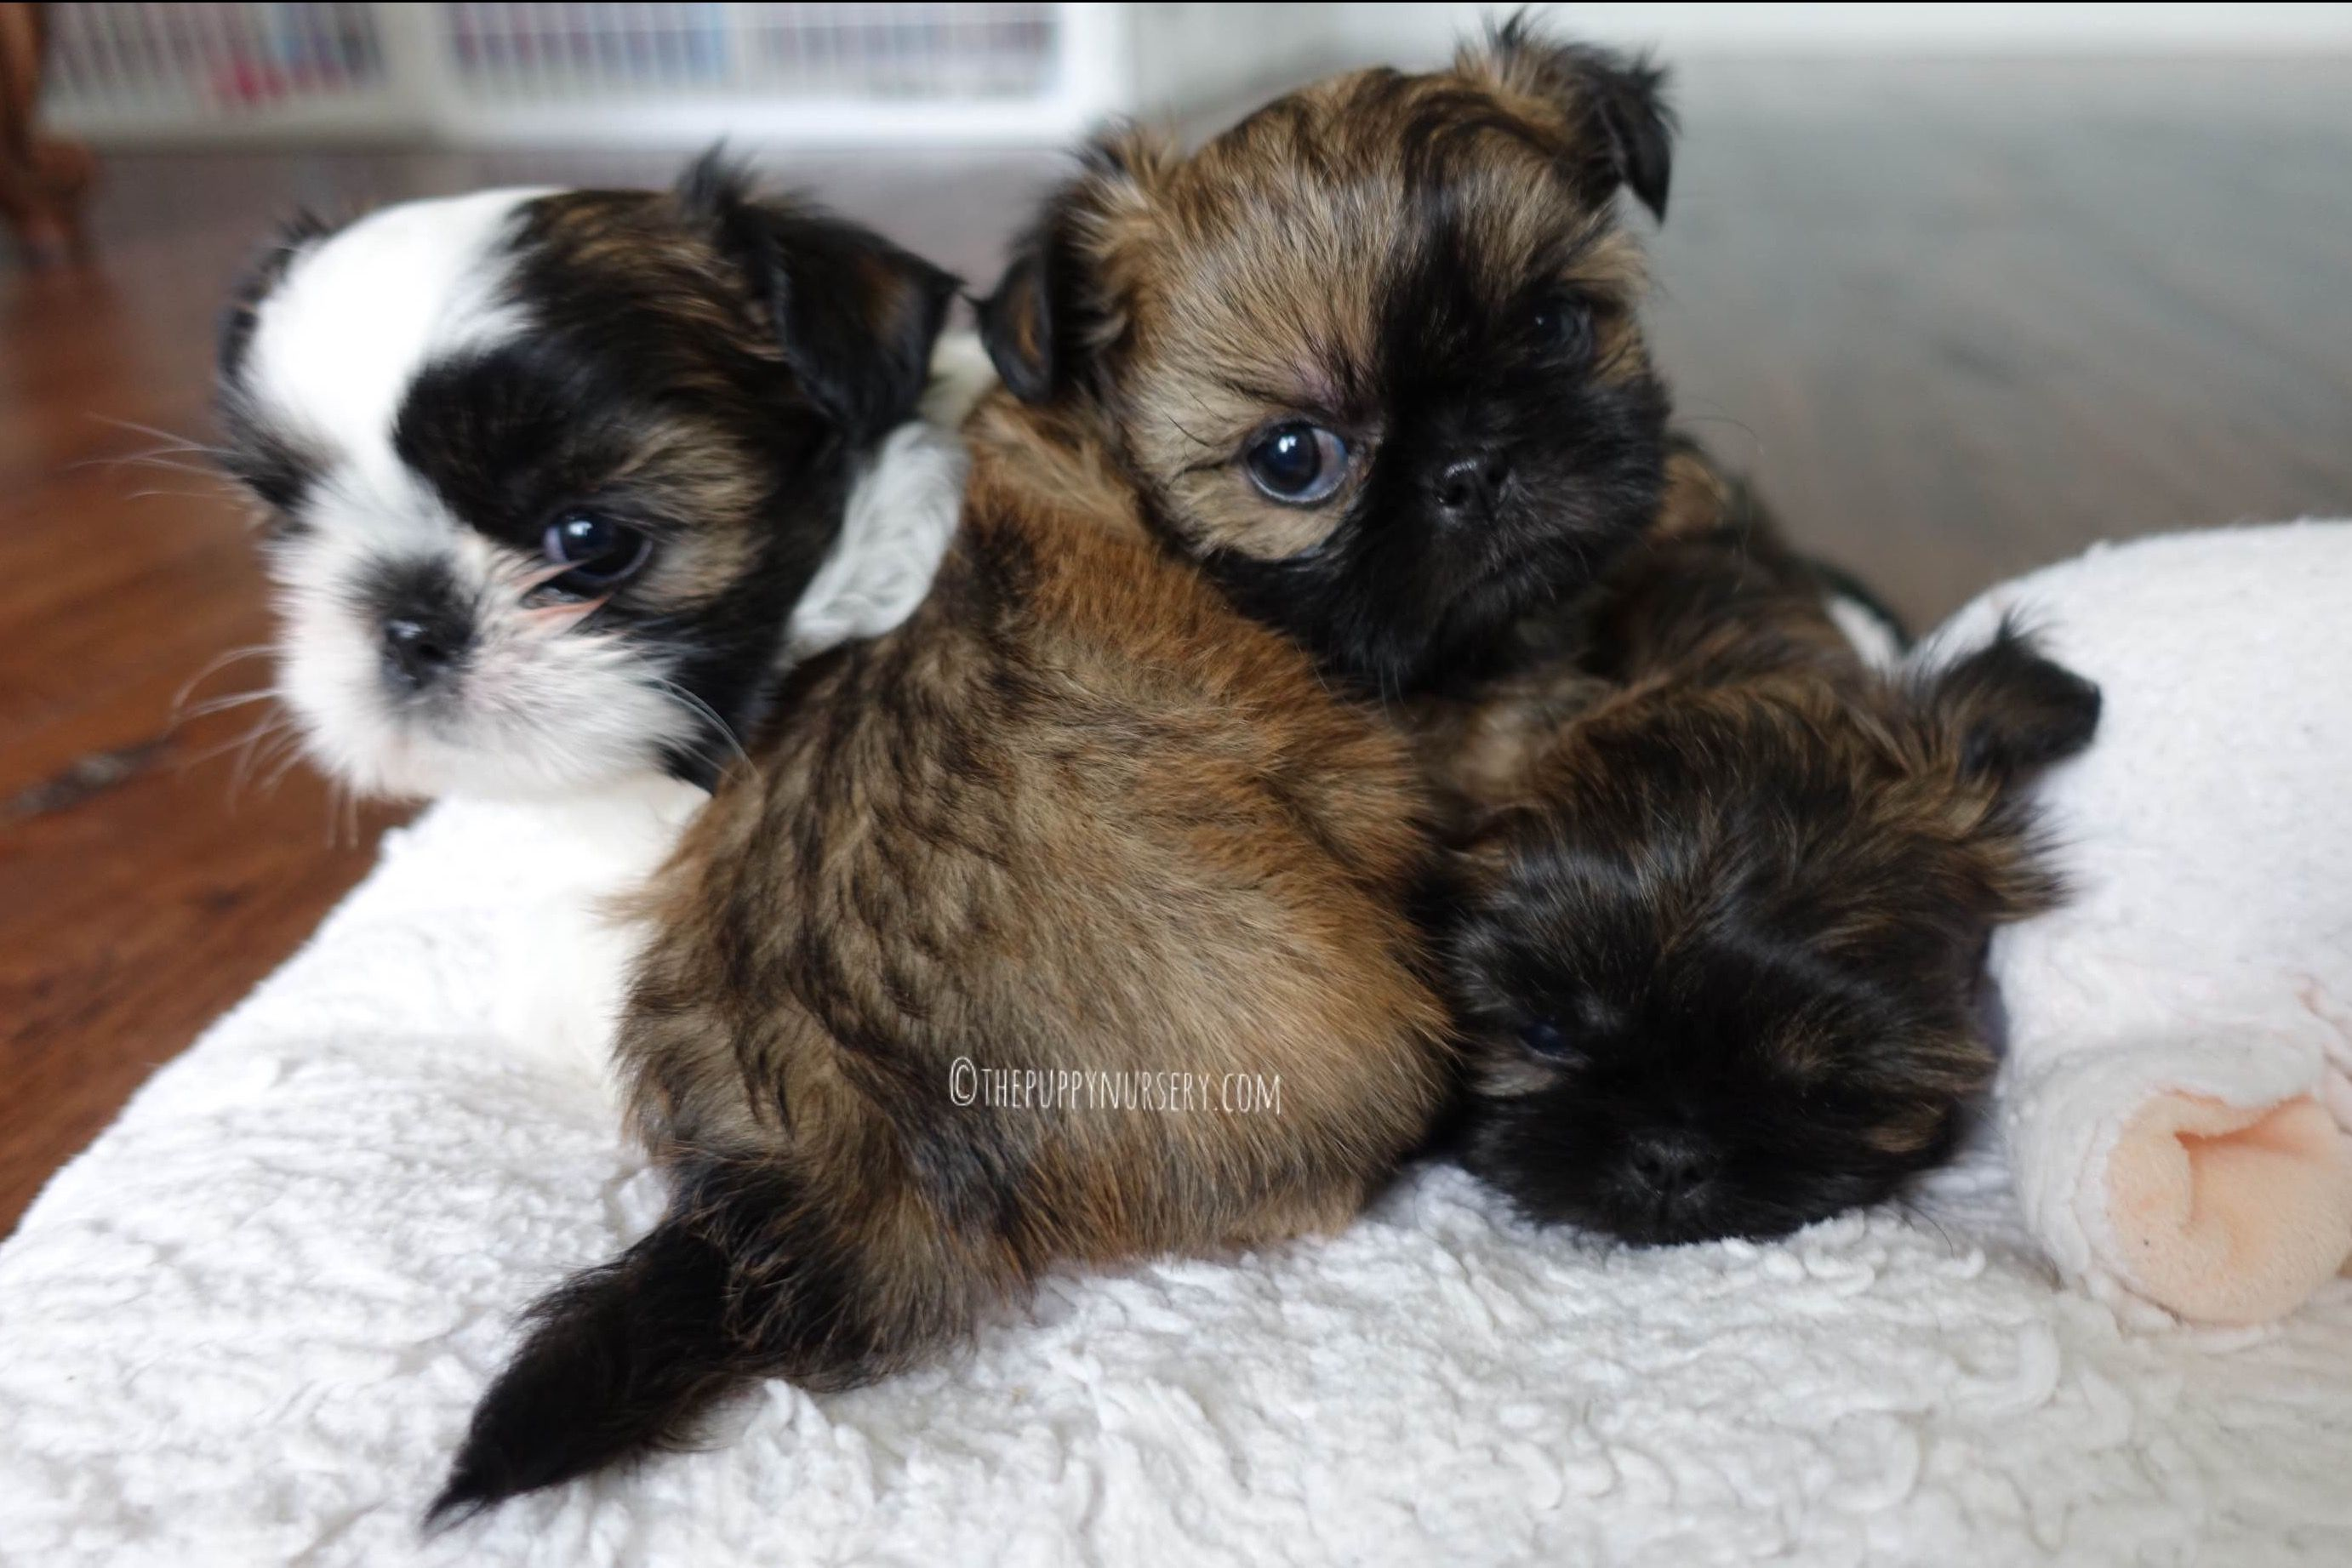 The Puppy Nursery - Puppies For Sale